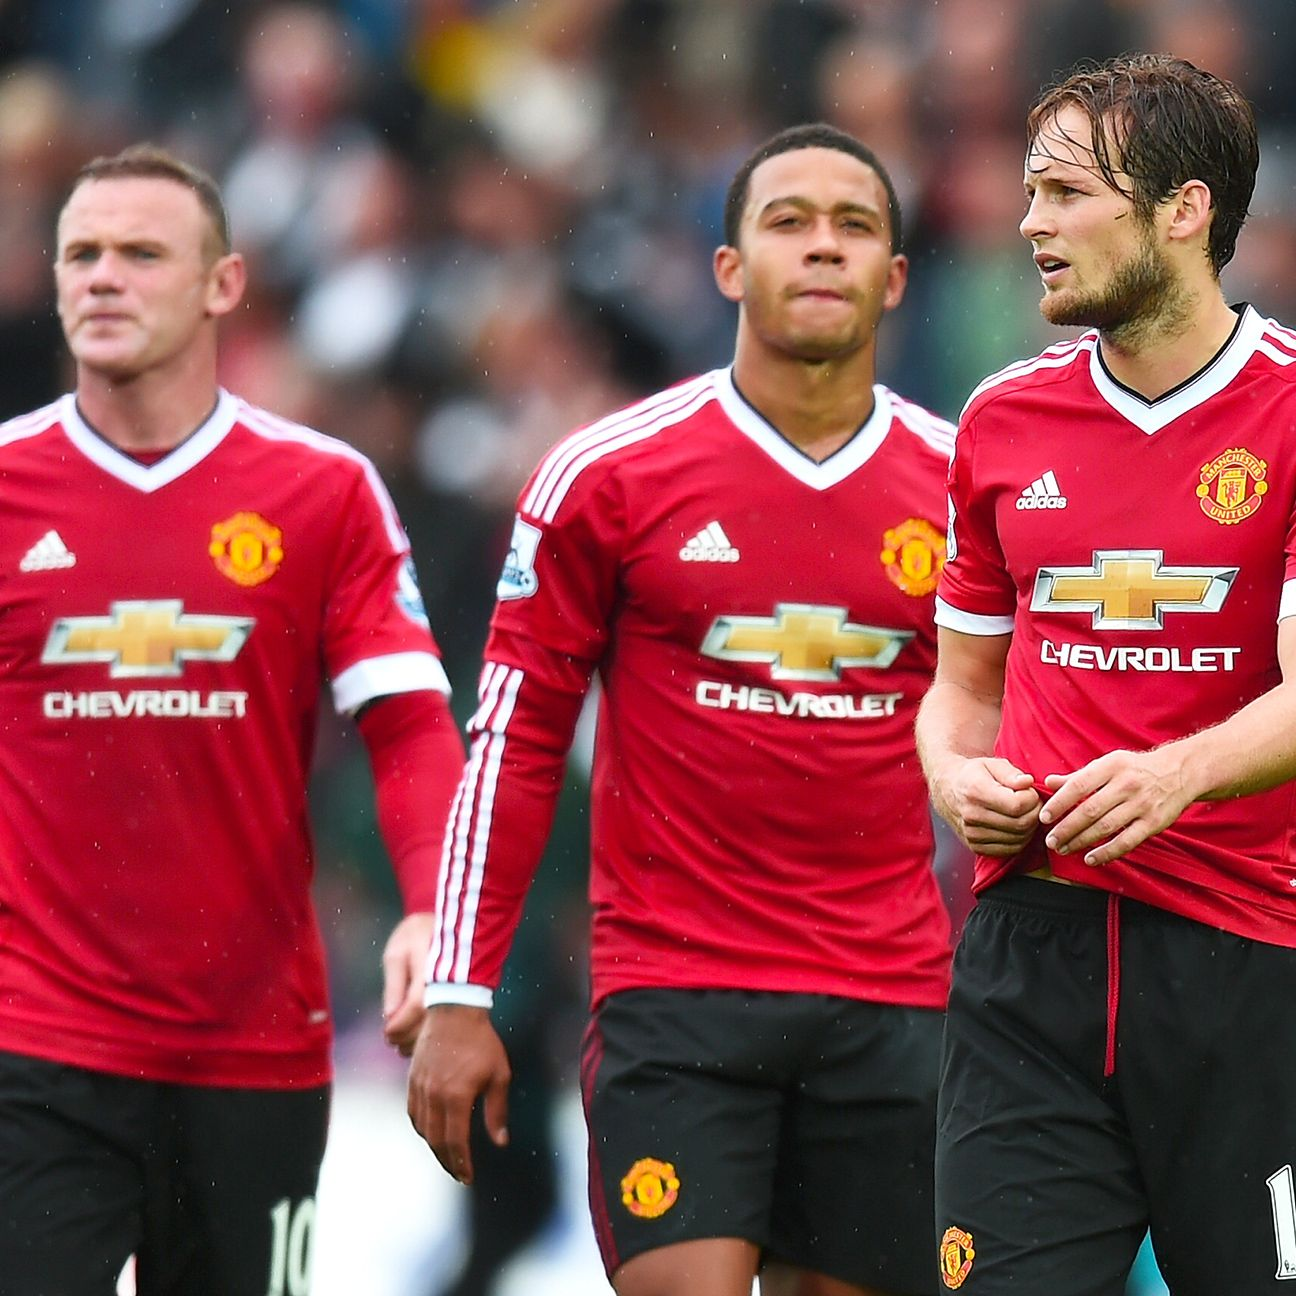 Are Manchester United a good bet as favorites in Sunday's derby?